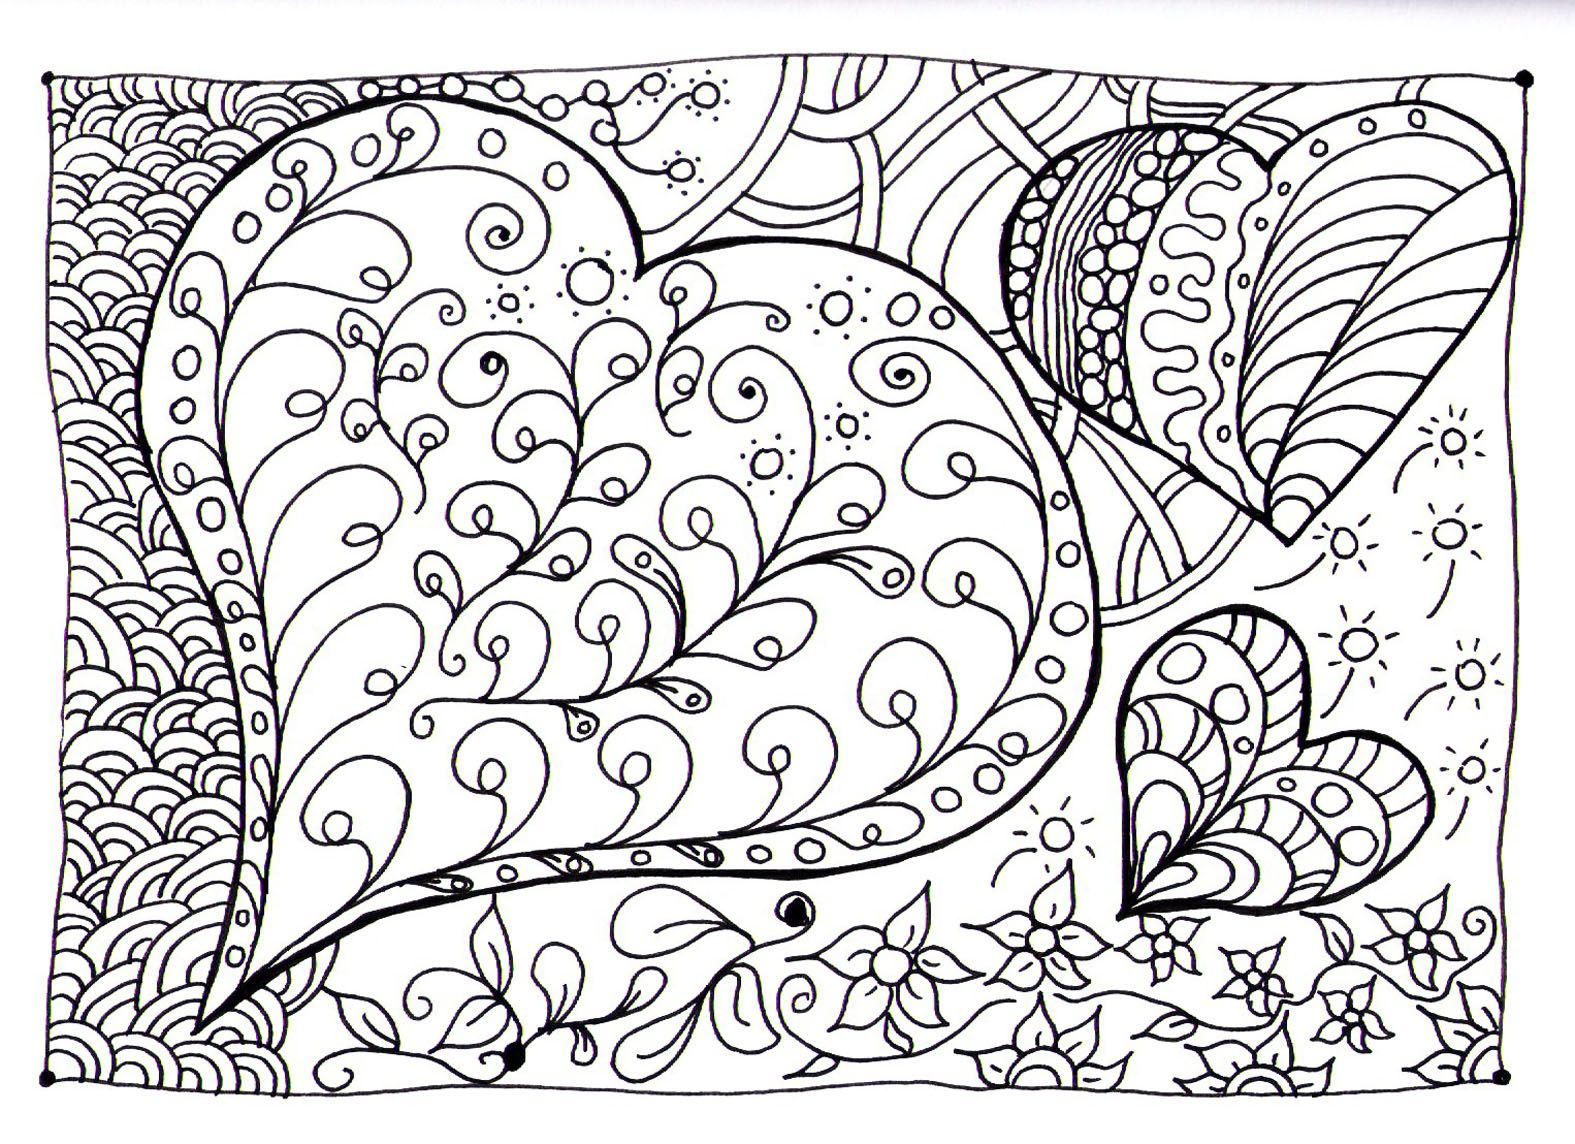 Colouring sheets to colour - Free Coloring Page Coloring Heart Zen Magnificient Coloring Page Based On Drawings Of Hearts And Other Zen Shapes